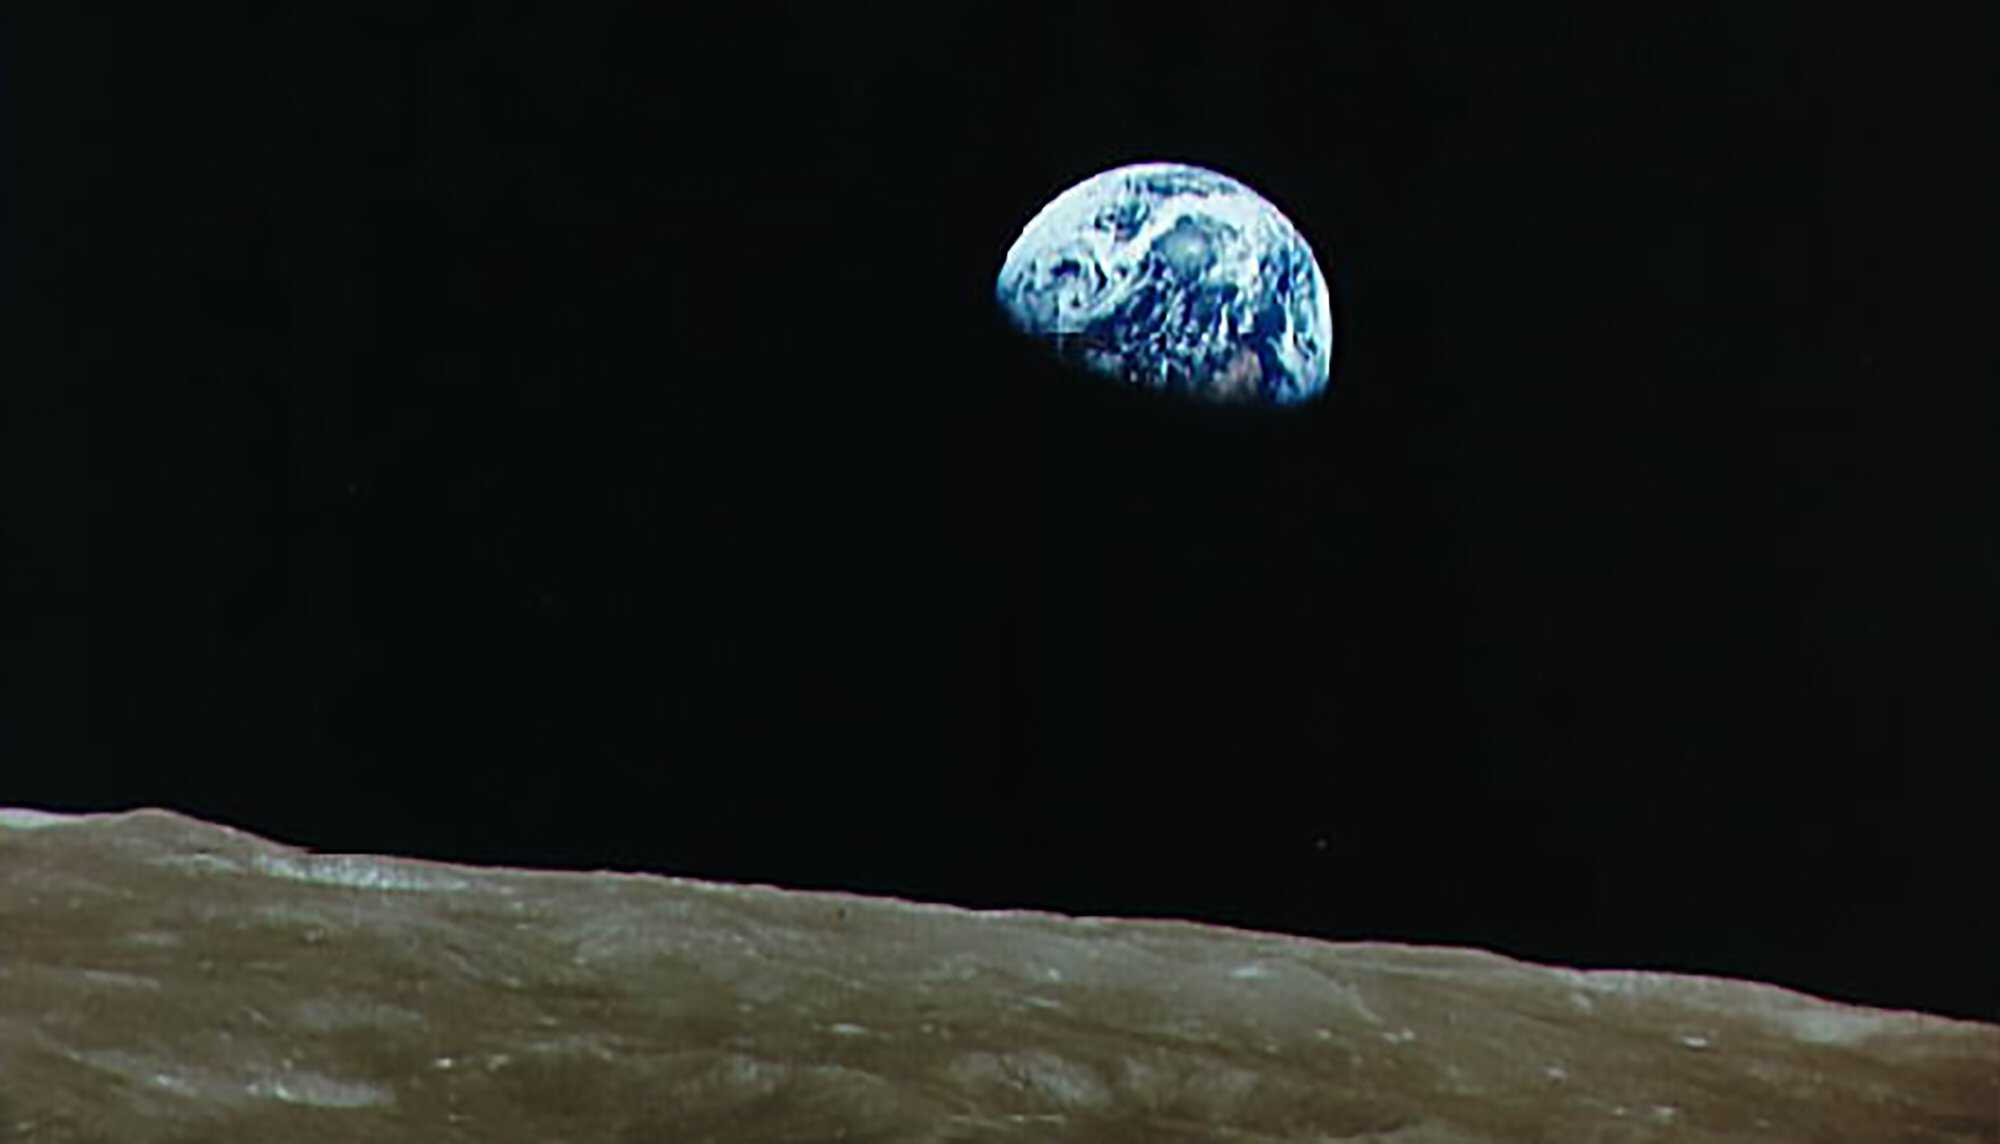 Moon-Apollo_earthrise_01.jpg